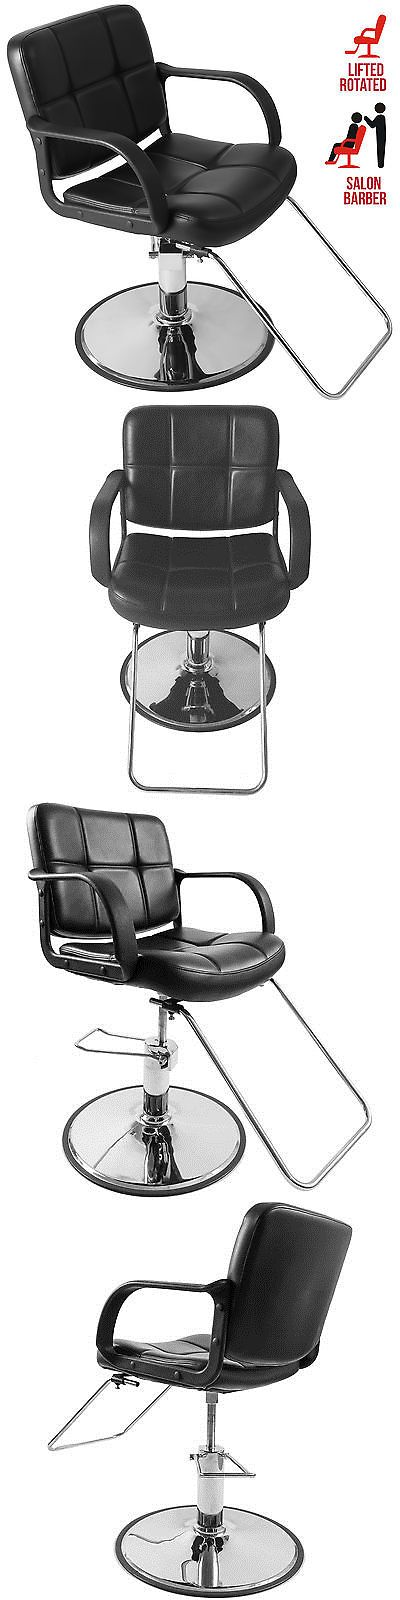 Salon Chairs and Dryers: Hydraulic Styling Barber Chair Shampoo Hair Salon Beauty Spa Equipment BUY IT NOW ONLY: $107.9